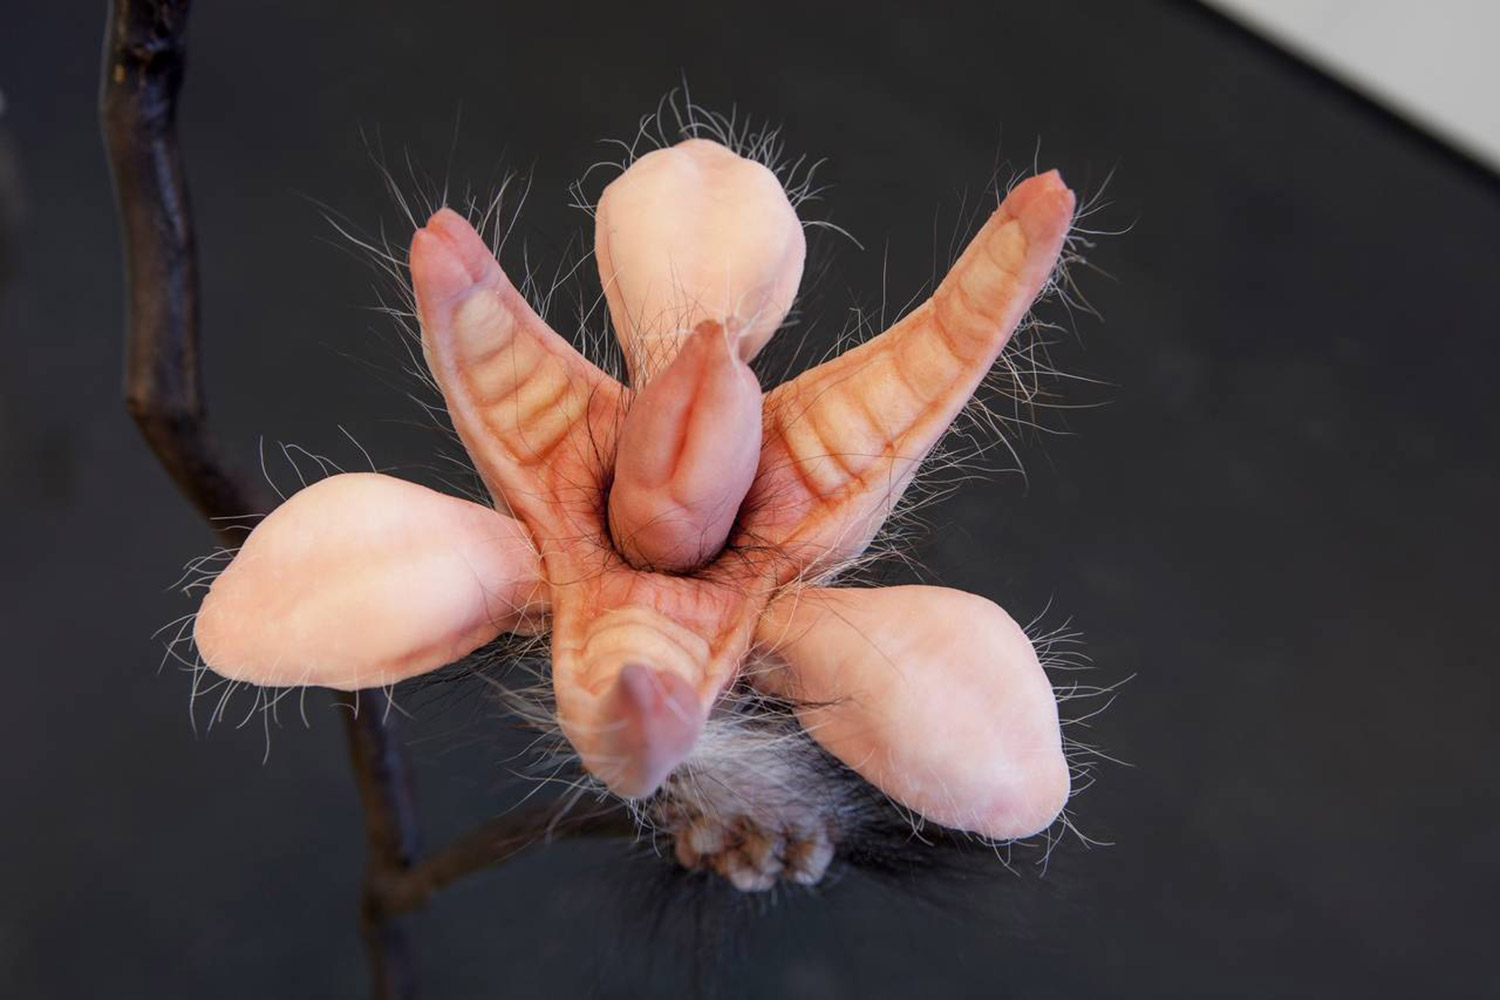 Patricia Piccinini, Metaflora (Twin Rivers Mouth, detail), fleshy flower sculpture